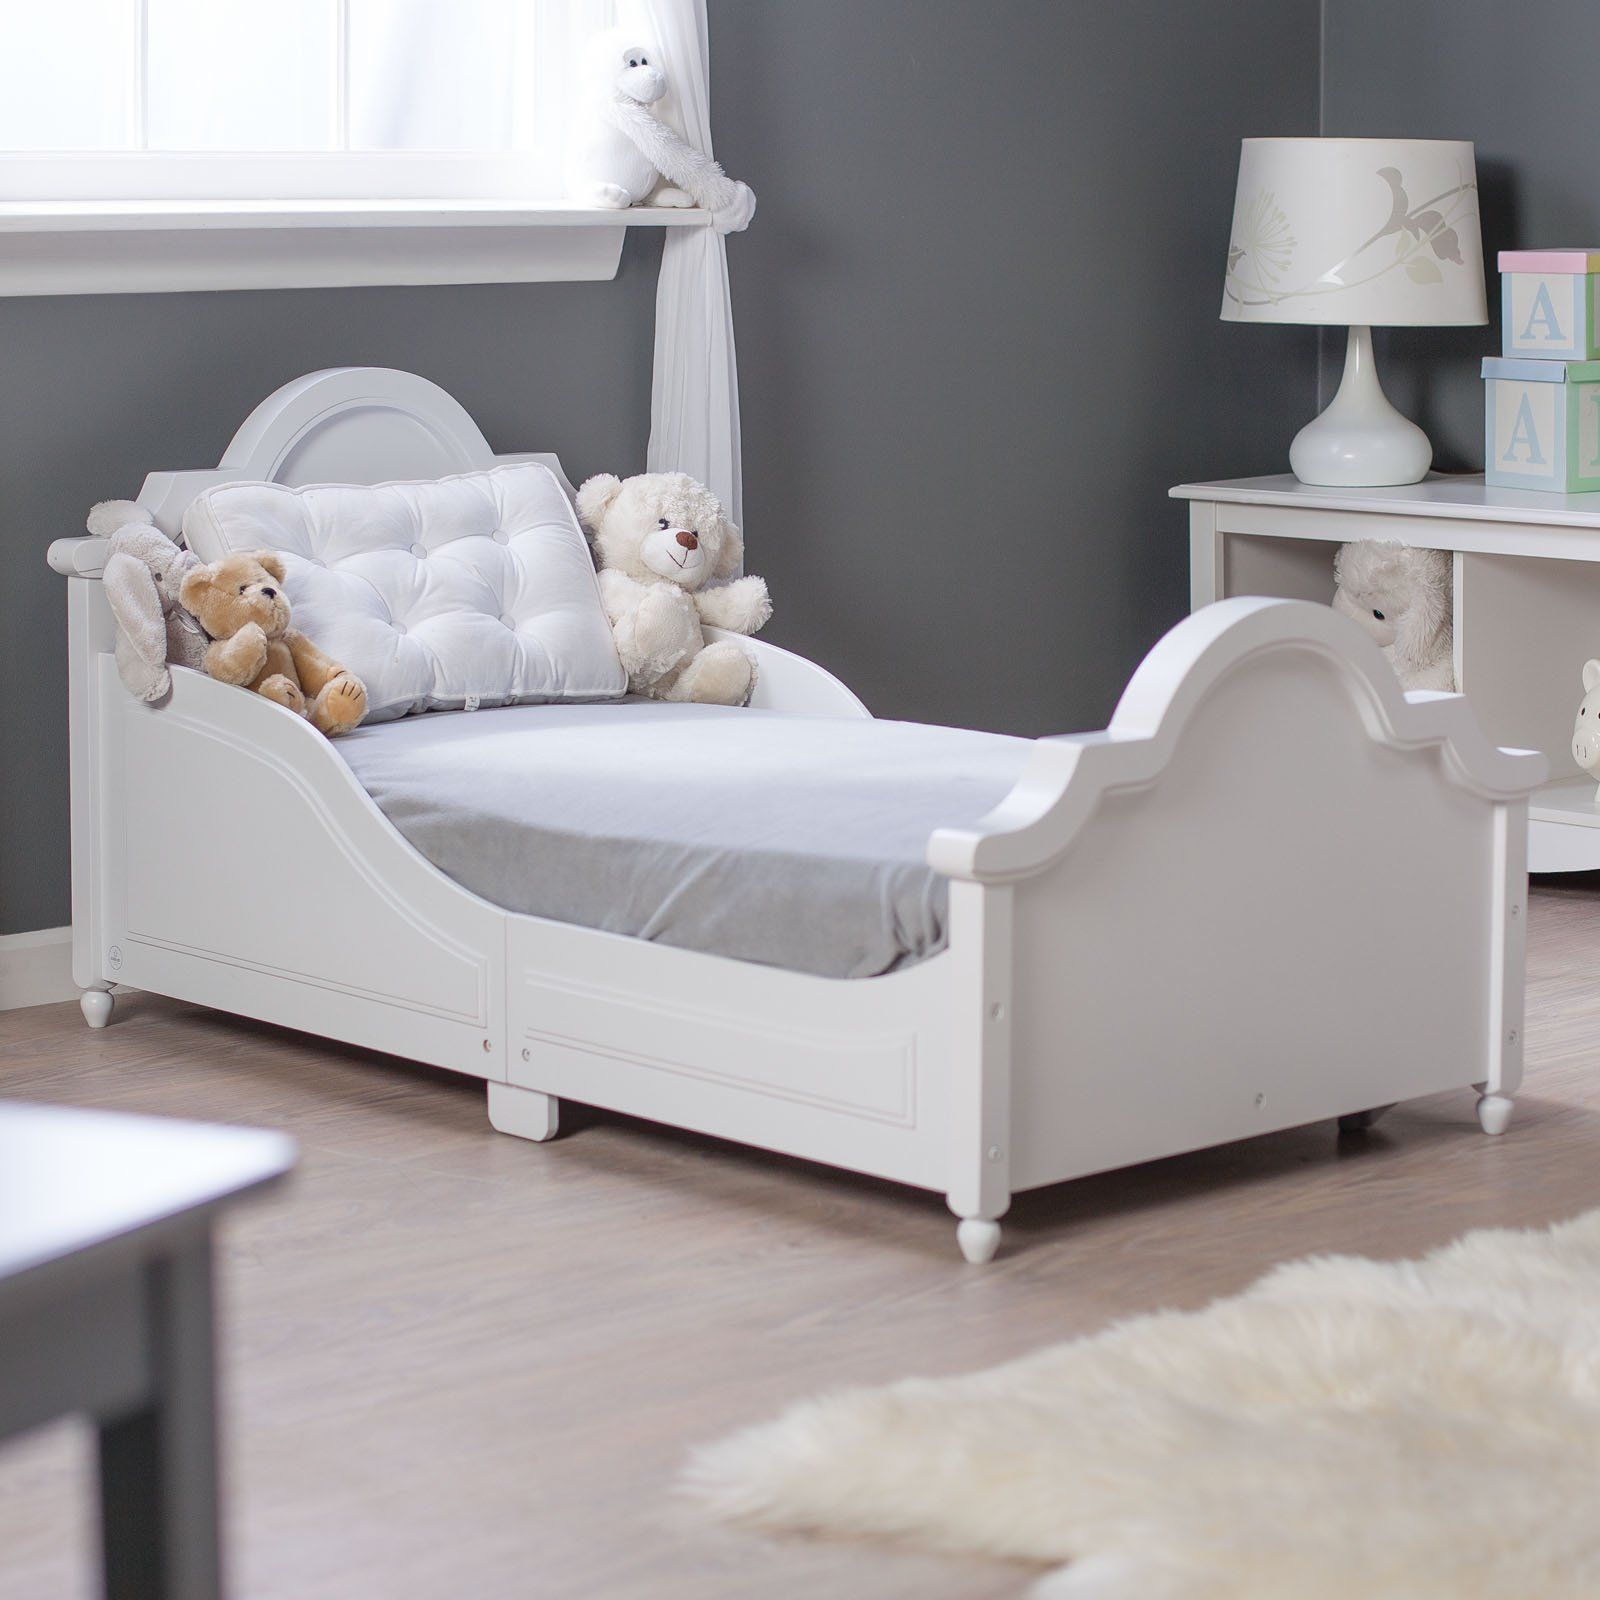 Kidkraft Raleigh Toddler Bed White 16128